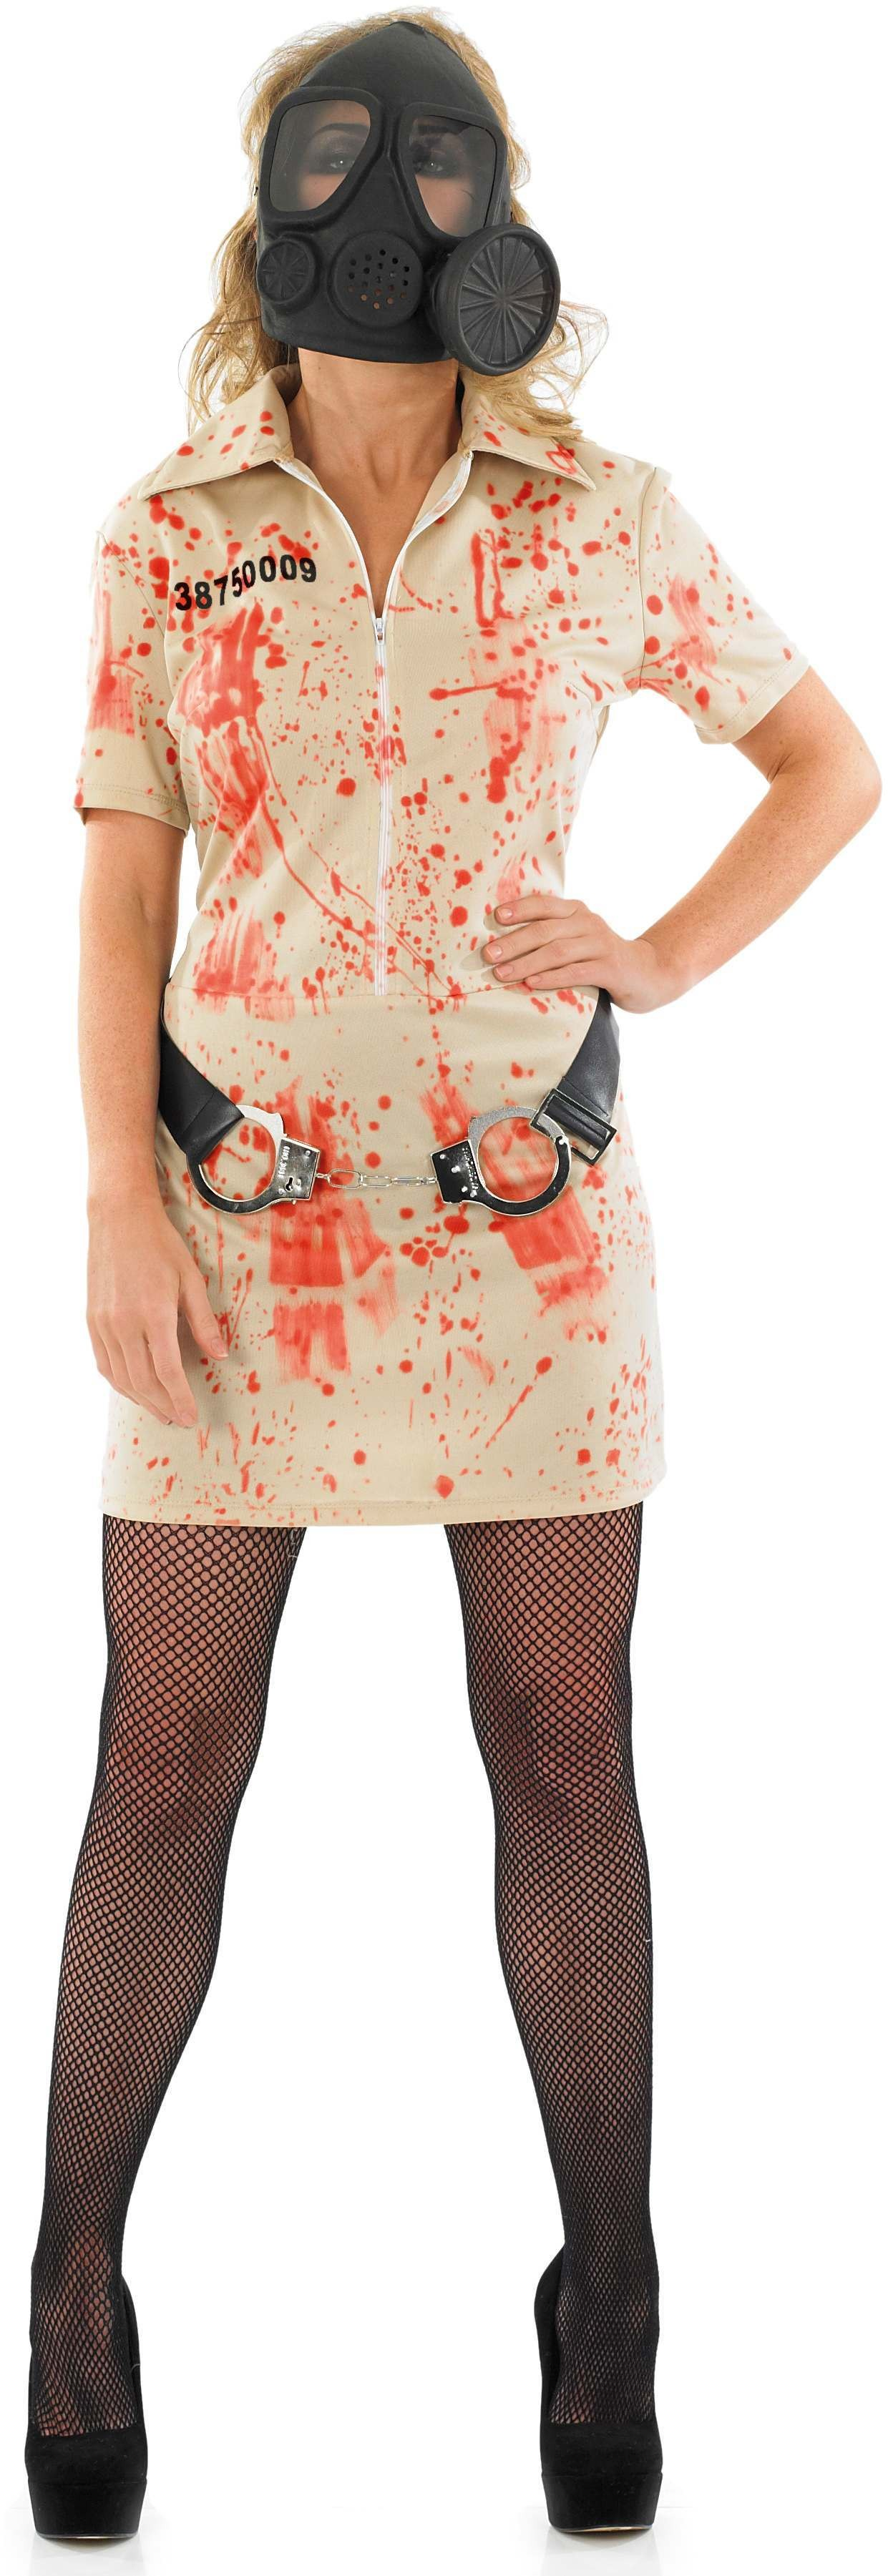 Ladies White (Zombie Prisoner Female)Fancy Dress Costume